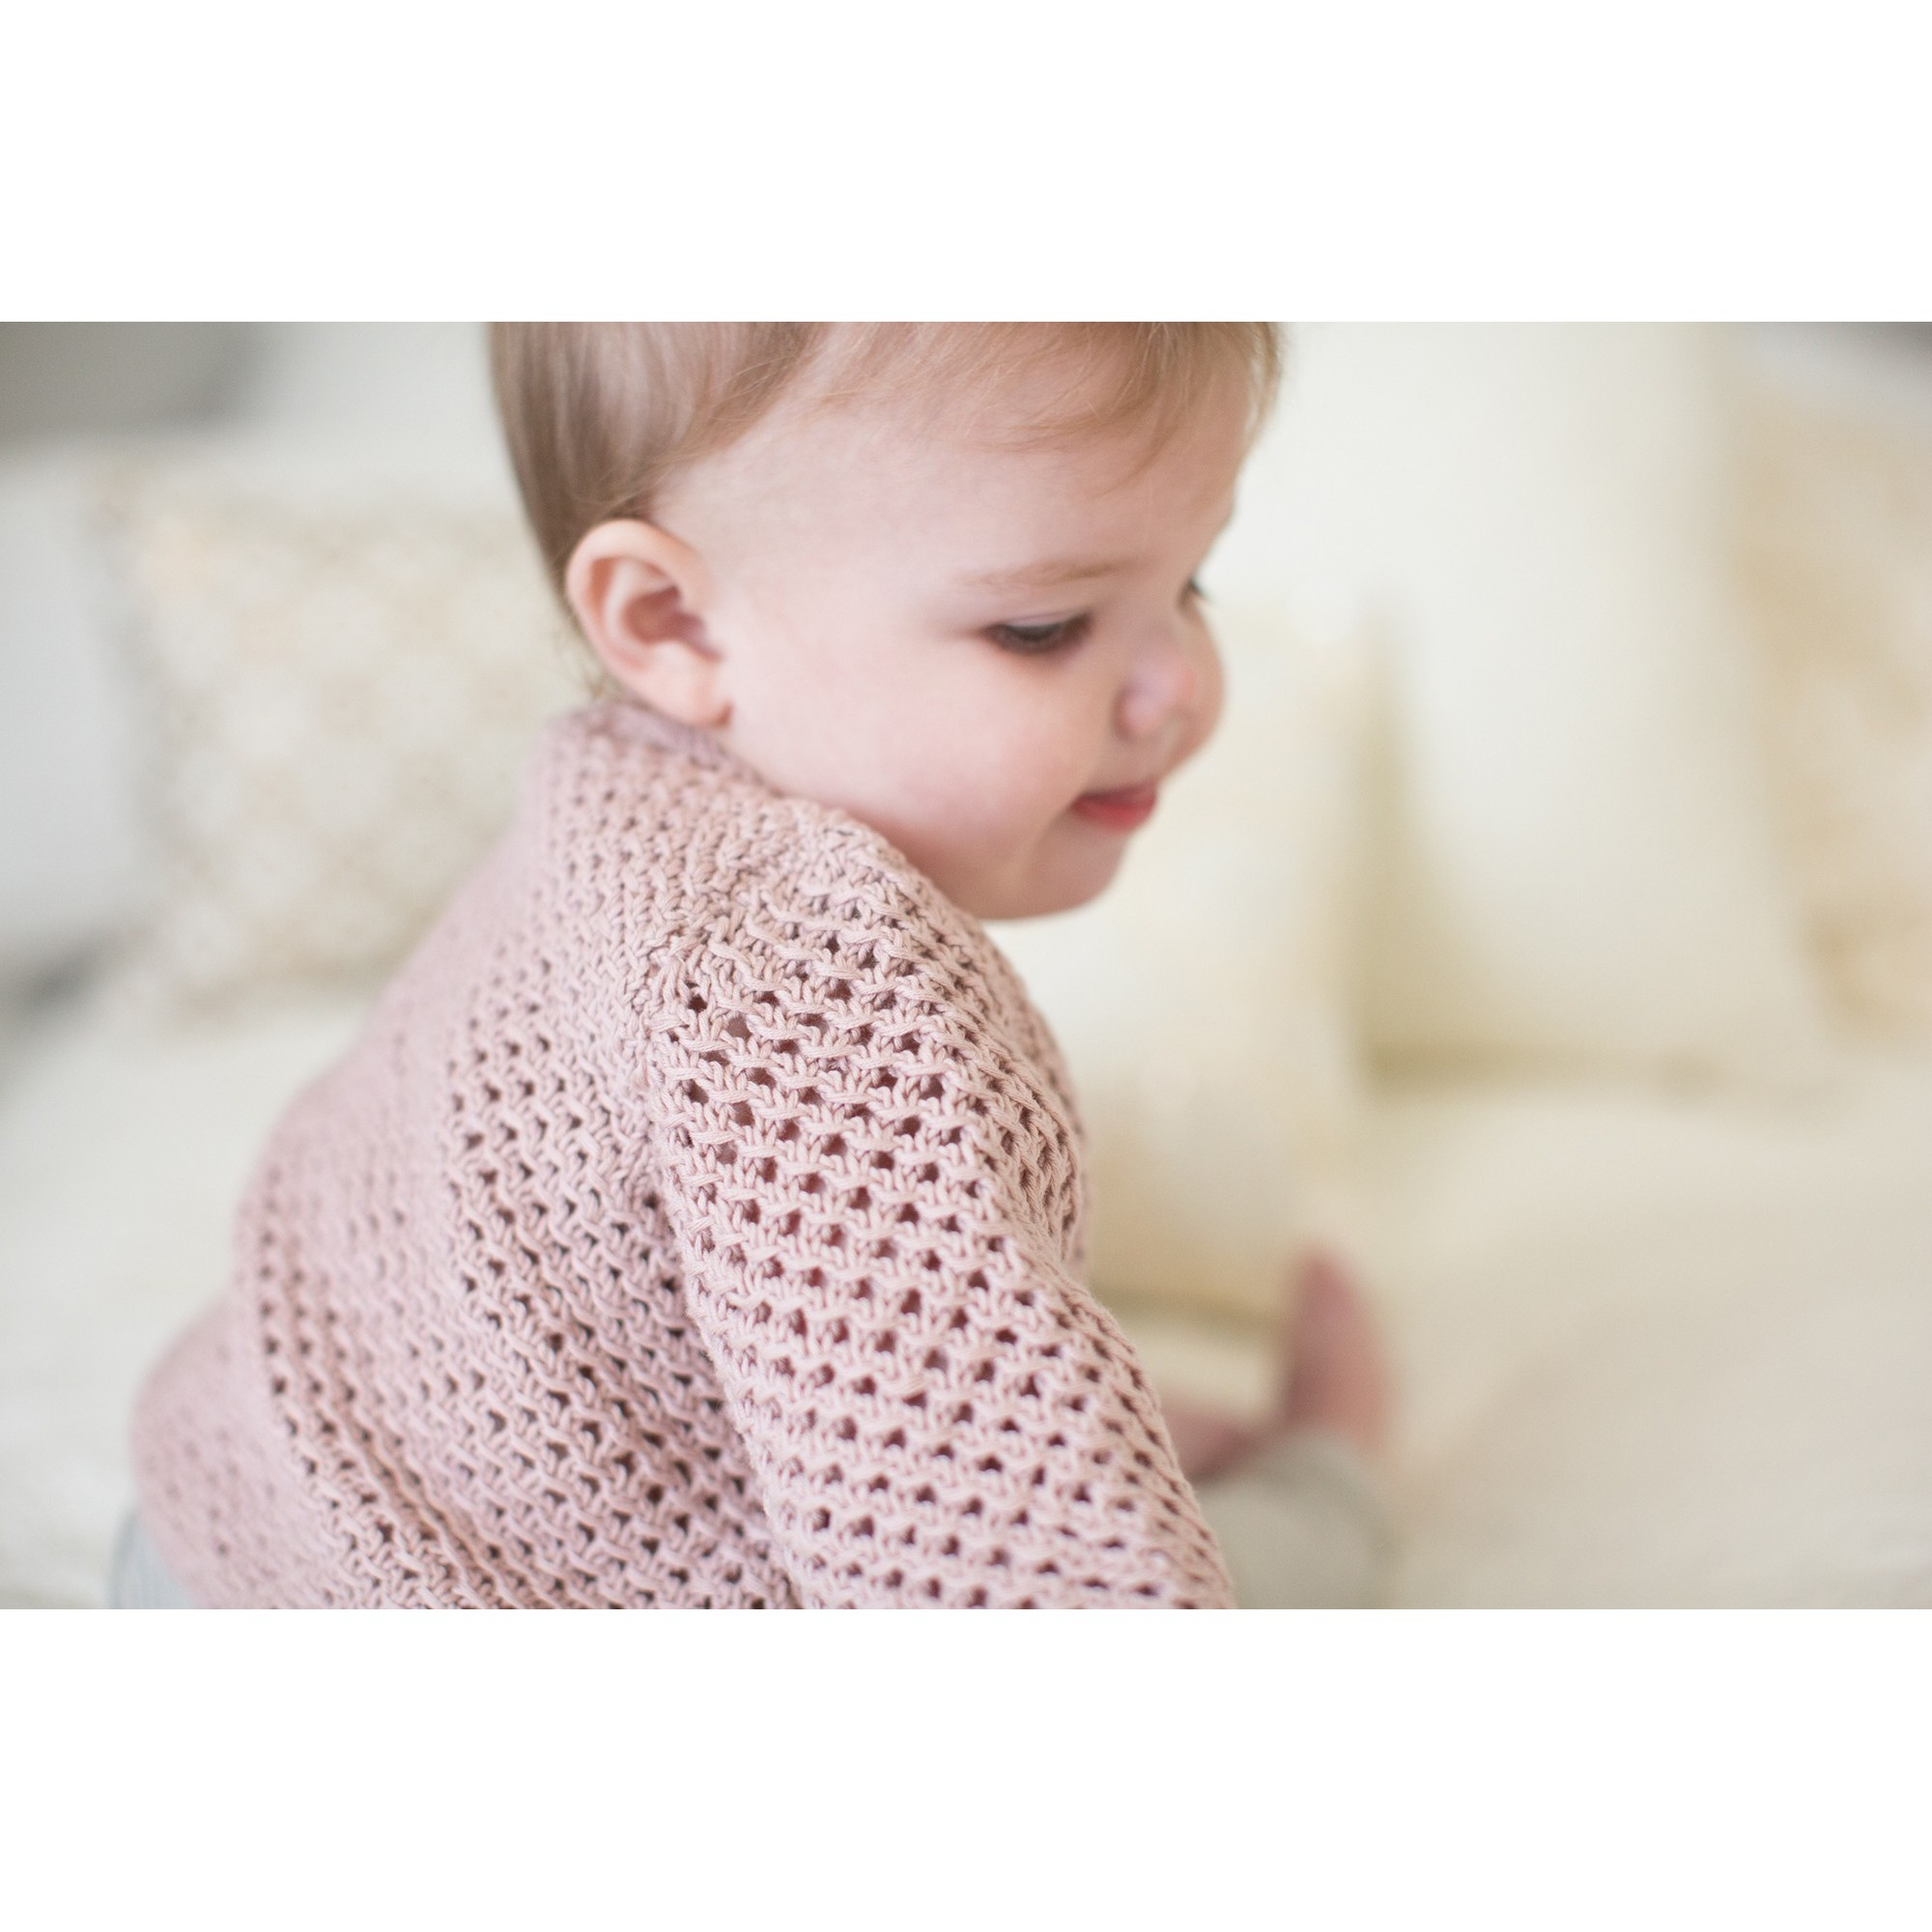 Joséphine cardigan for baby - opaline pink color - worn (other view)